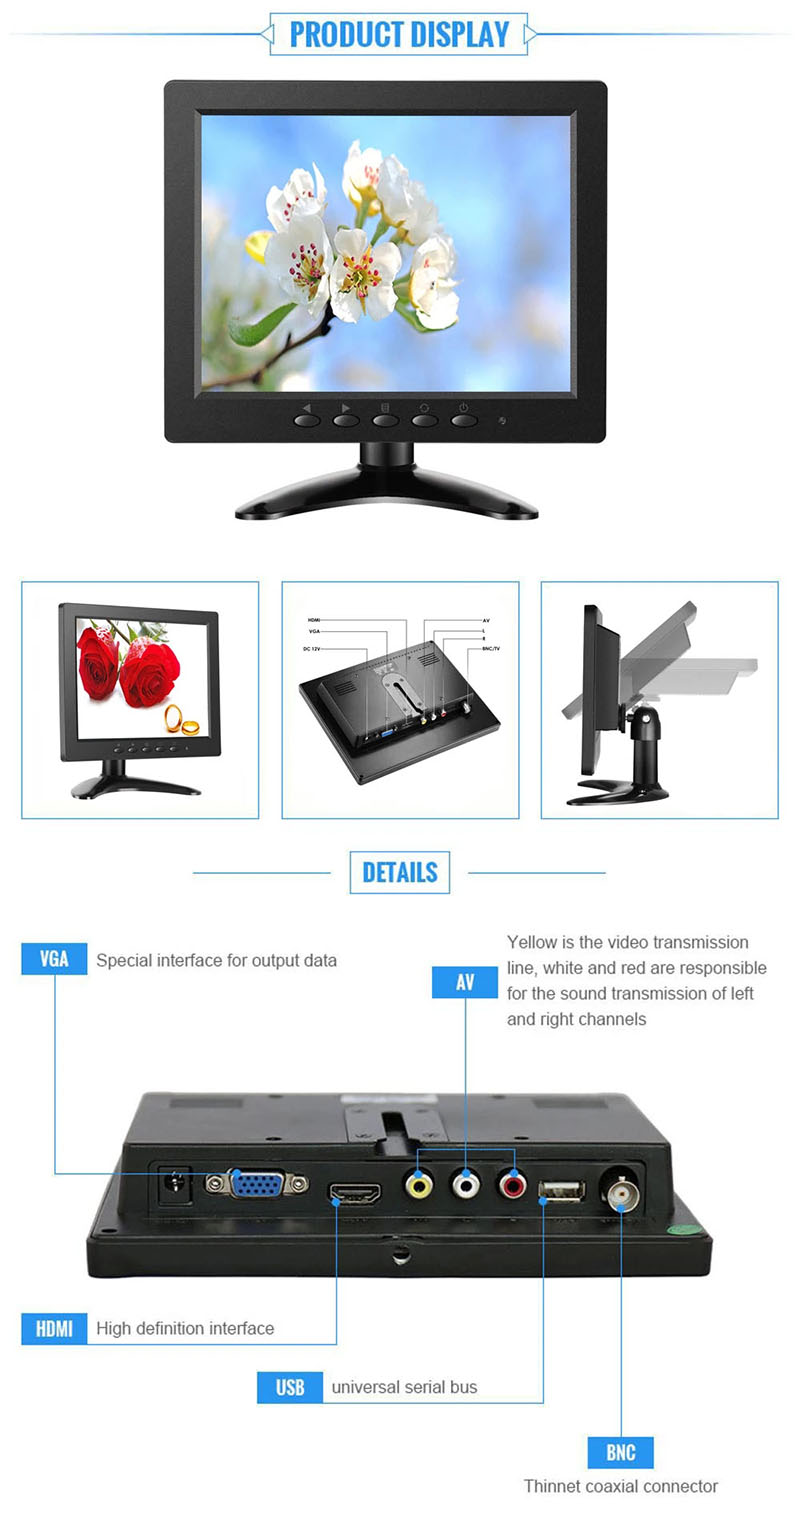 8 inch TFT LED Monitor 1024x768 Resolution Display Portable 4:3 IPS HD Color Video Screen Support HDM I VGA BNC AV USB Input